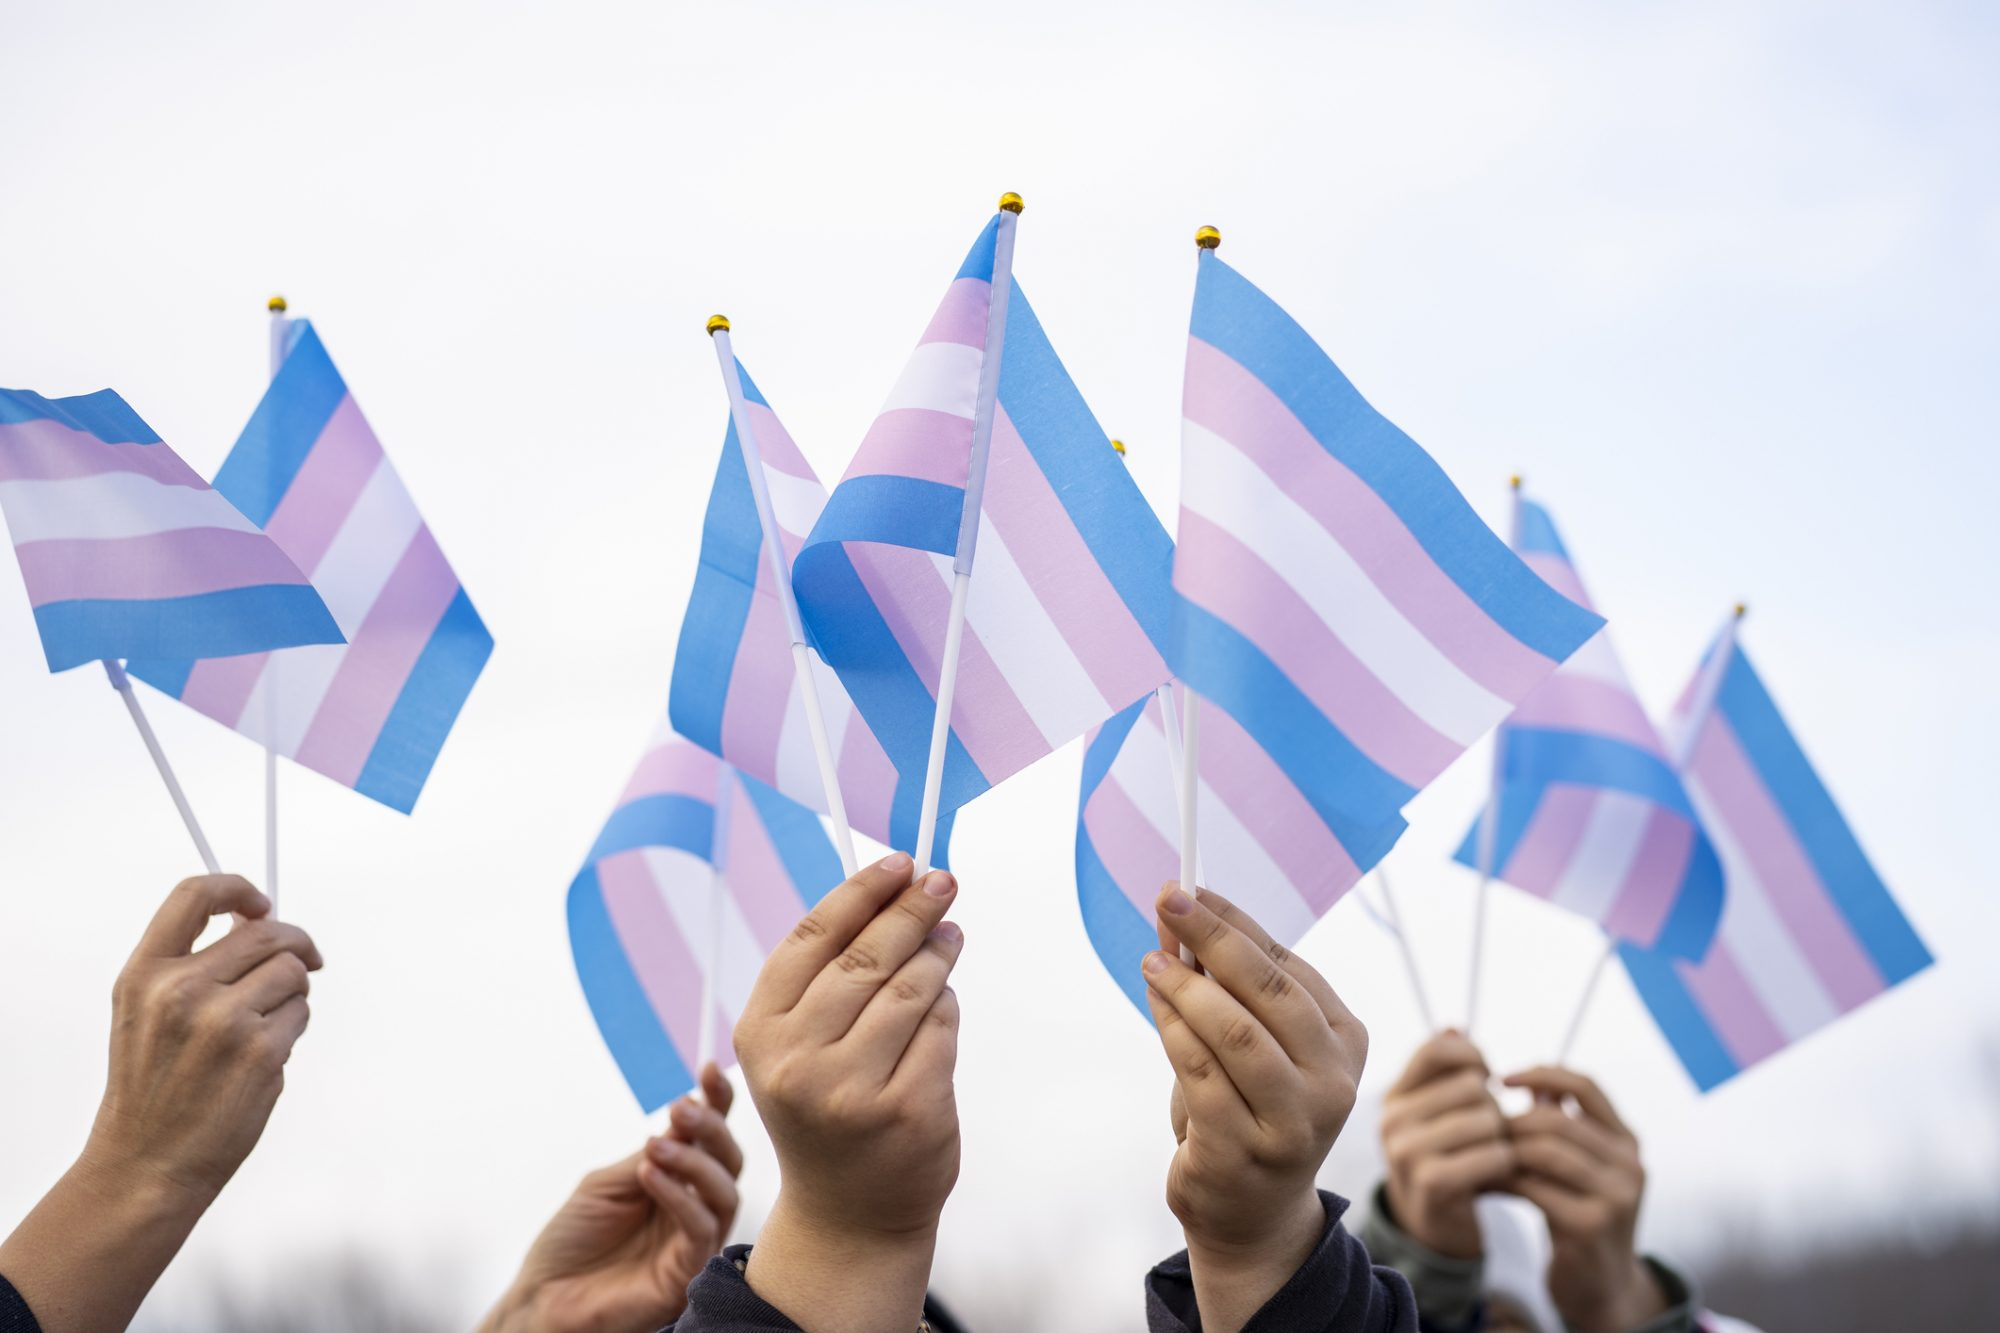 An image of people holding trans rights flags.